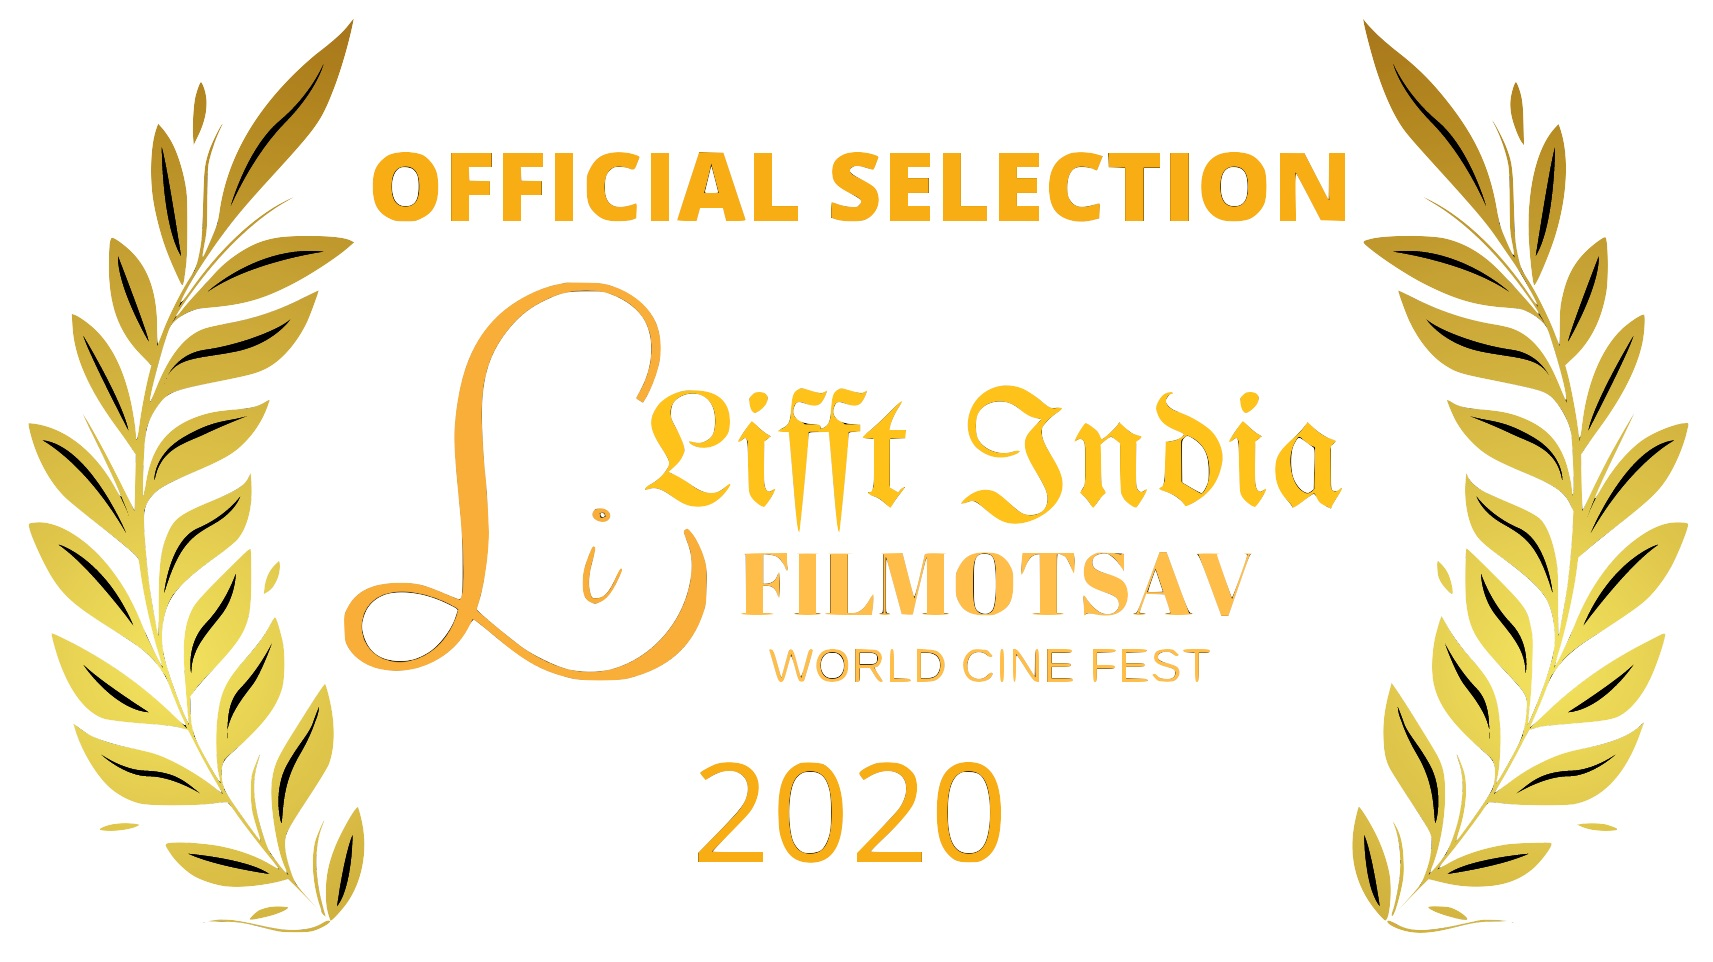 LIFFT INDIA LAUREL   OFFICIAL SELECTION 2021 TRANSPARENT - Ménage du Trois - by Saranne Bensusan  <BR> A FromThe3rdStory Productions film.